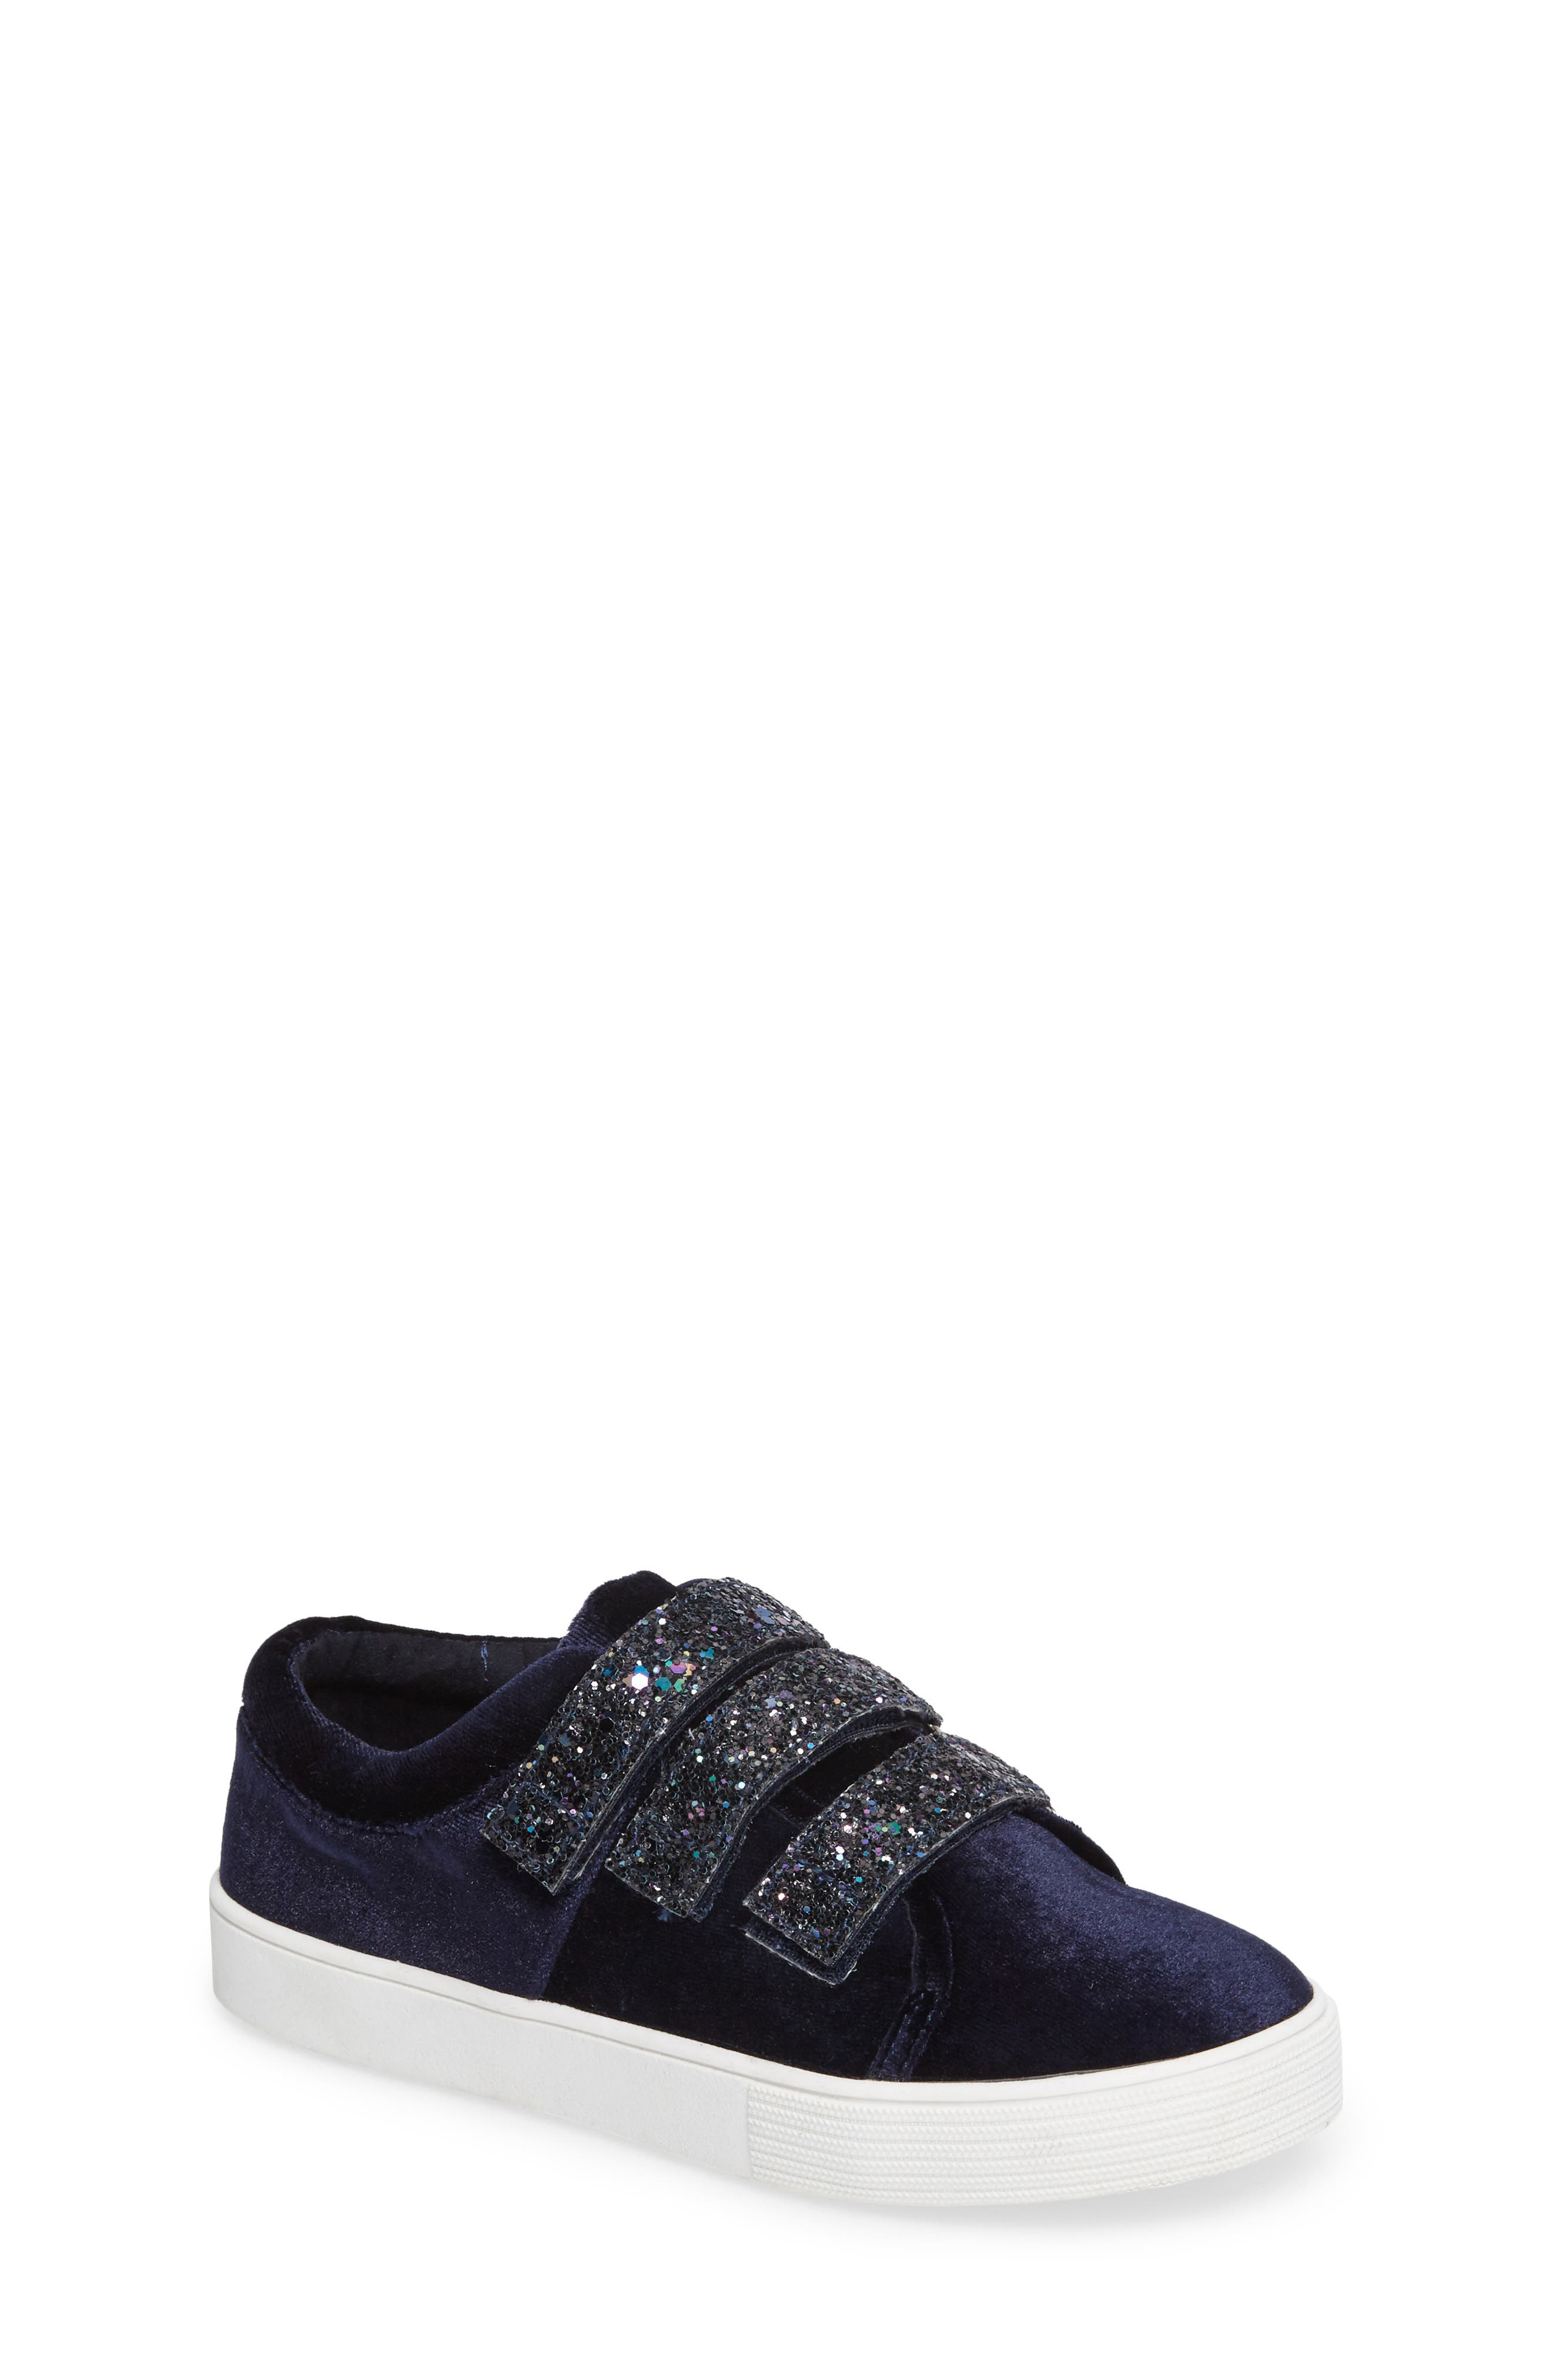 Kam Glitter Strap Sneaker,                         Main,                         color, Navy Fabric